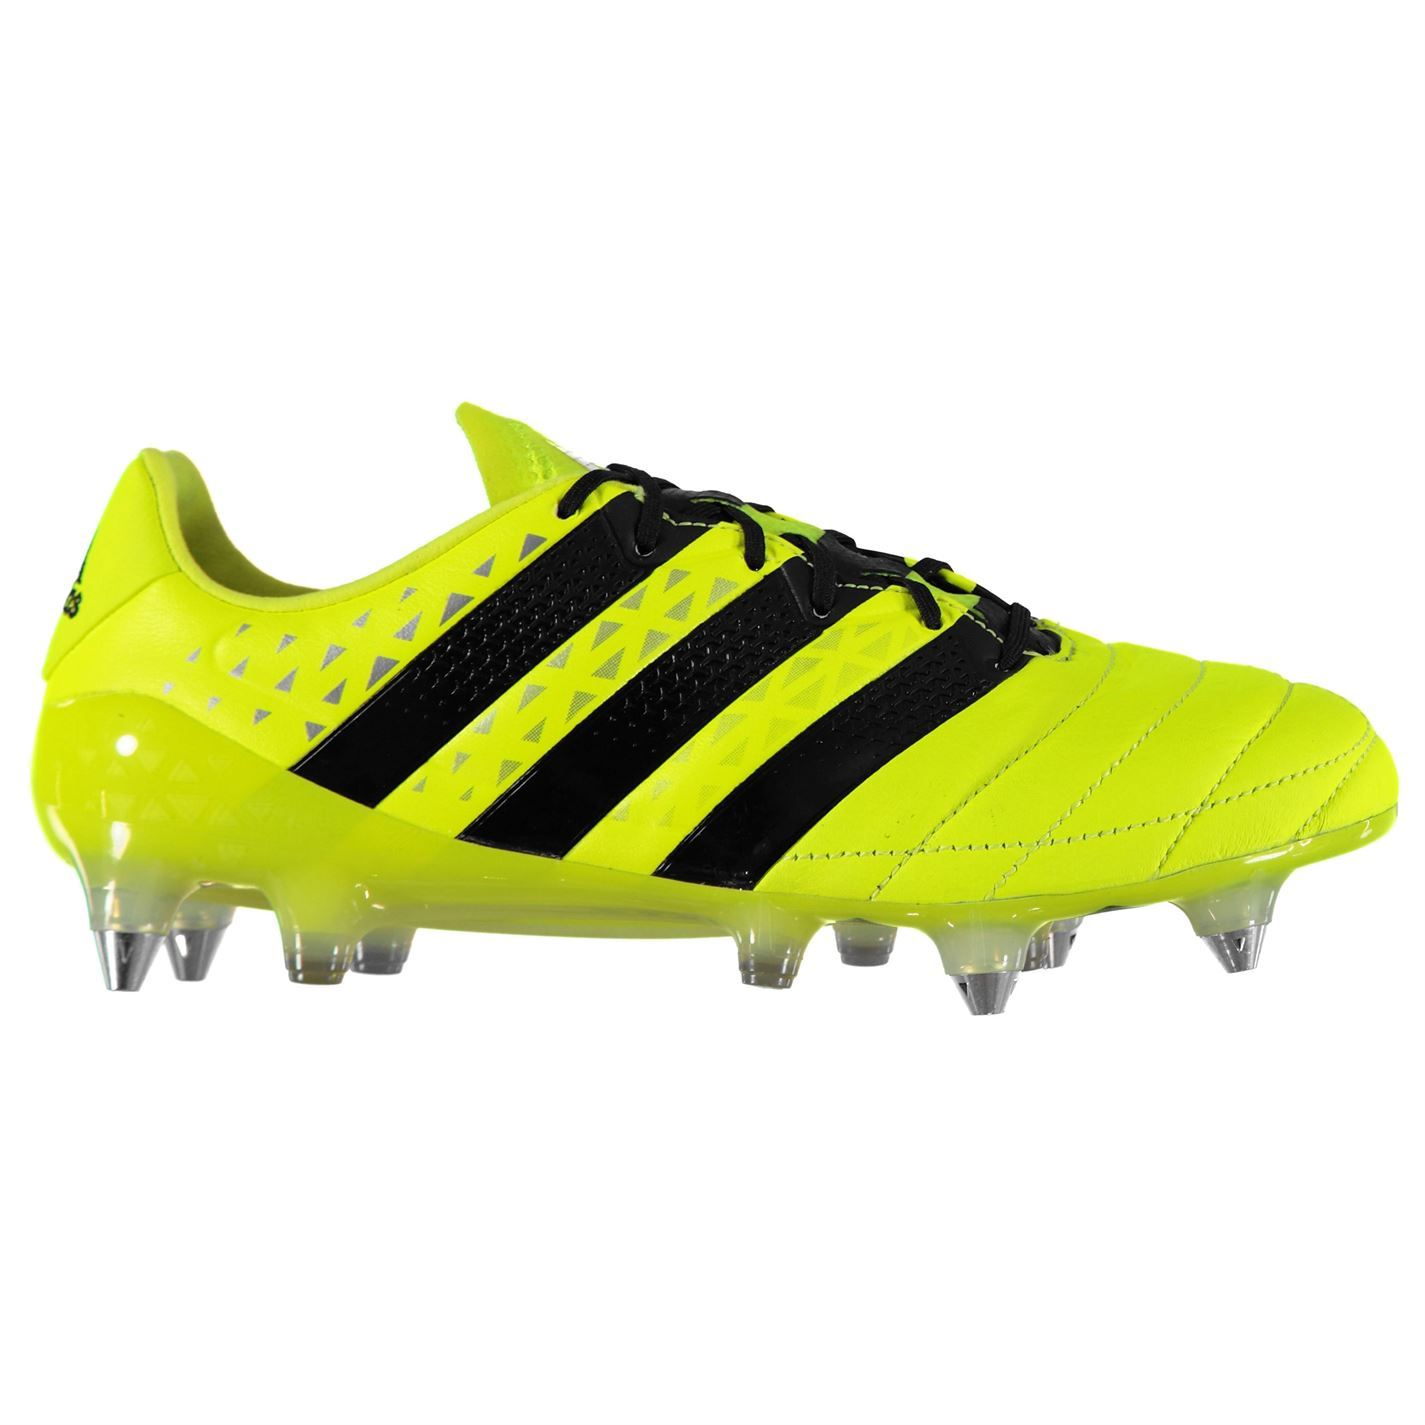 06718a53cc7 adidas Ace 16.1 SG Soft Ground Football Boots Mens Yellow Soccer Shoes  Cleats